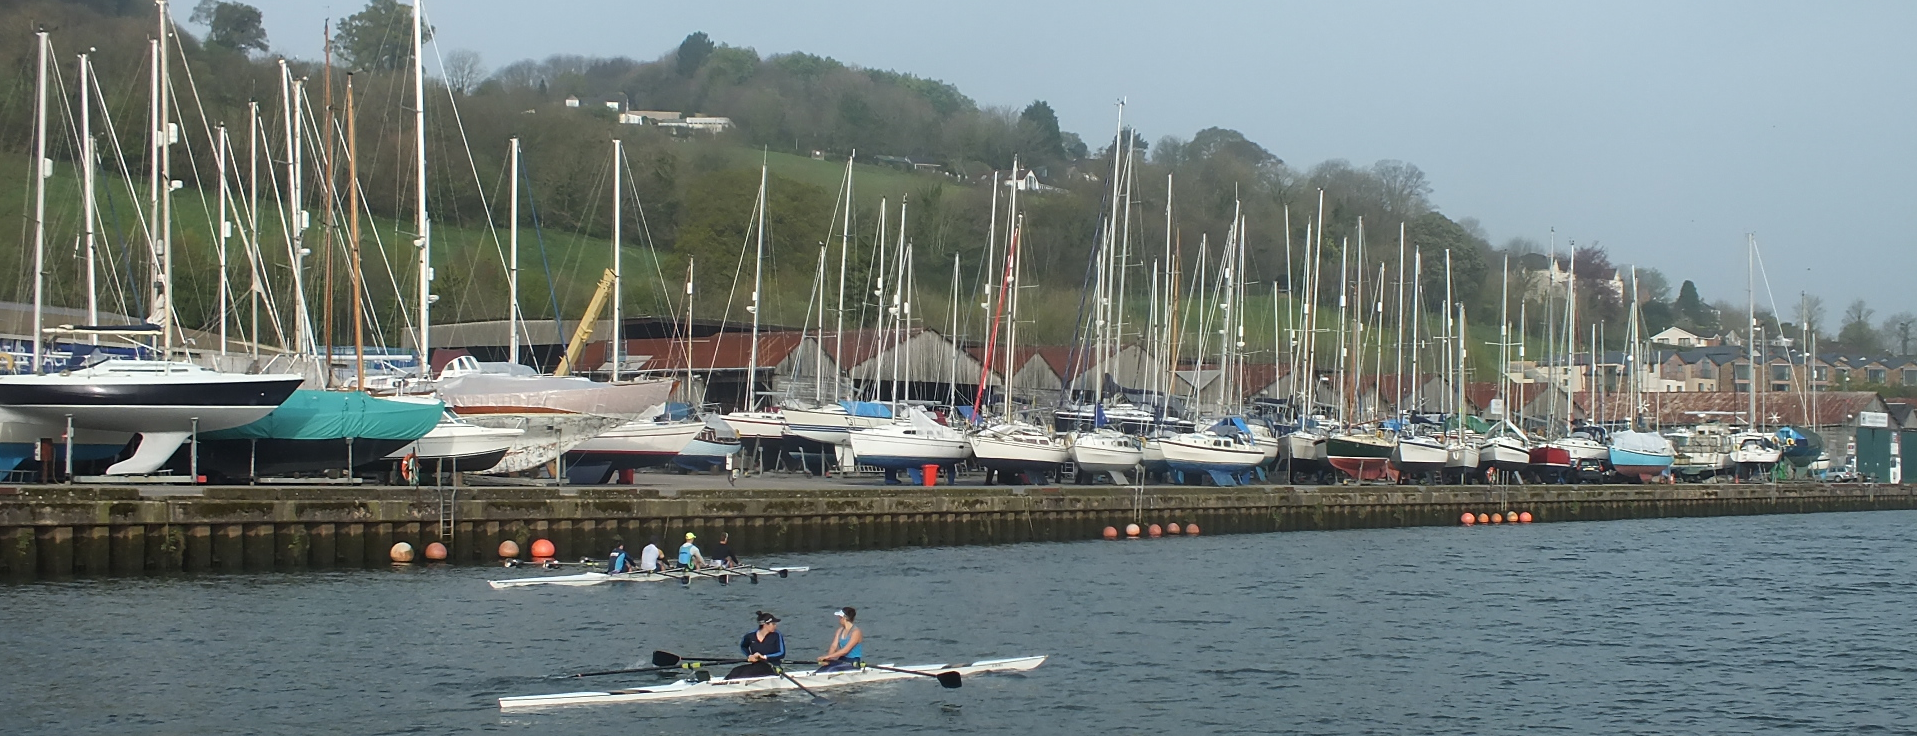 Long view of Baltic Wharf with boats along the river Dart